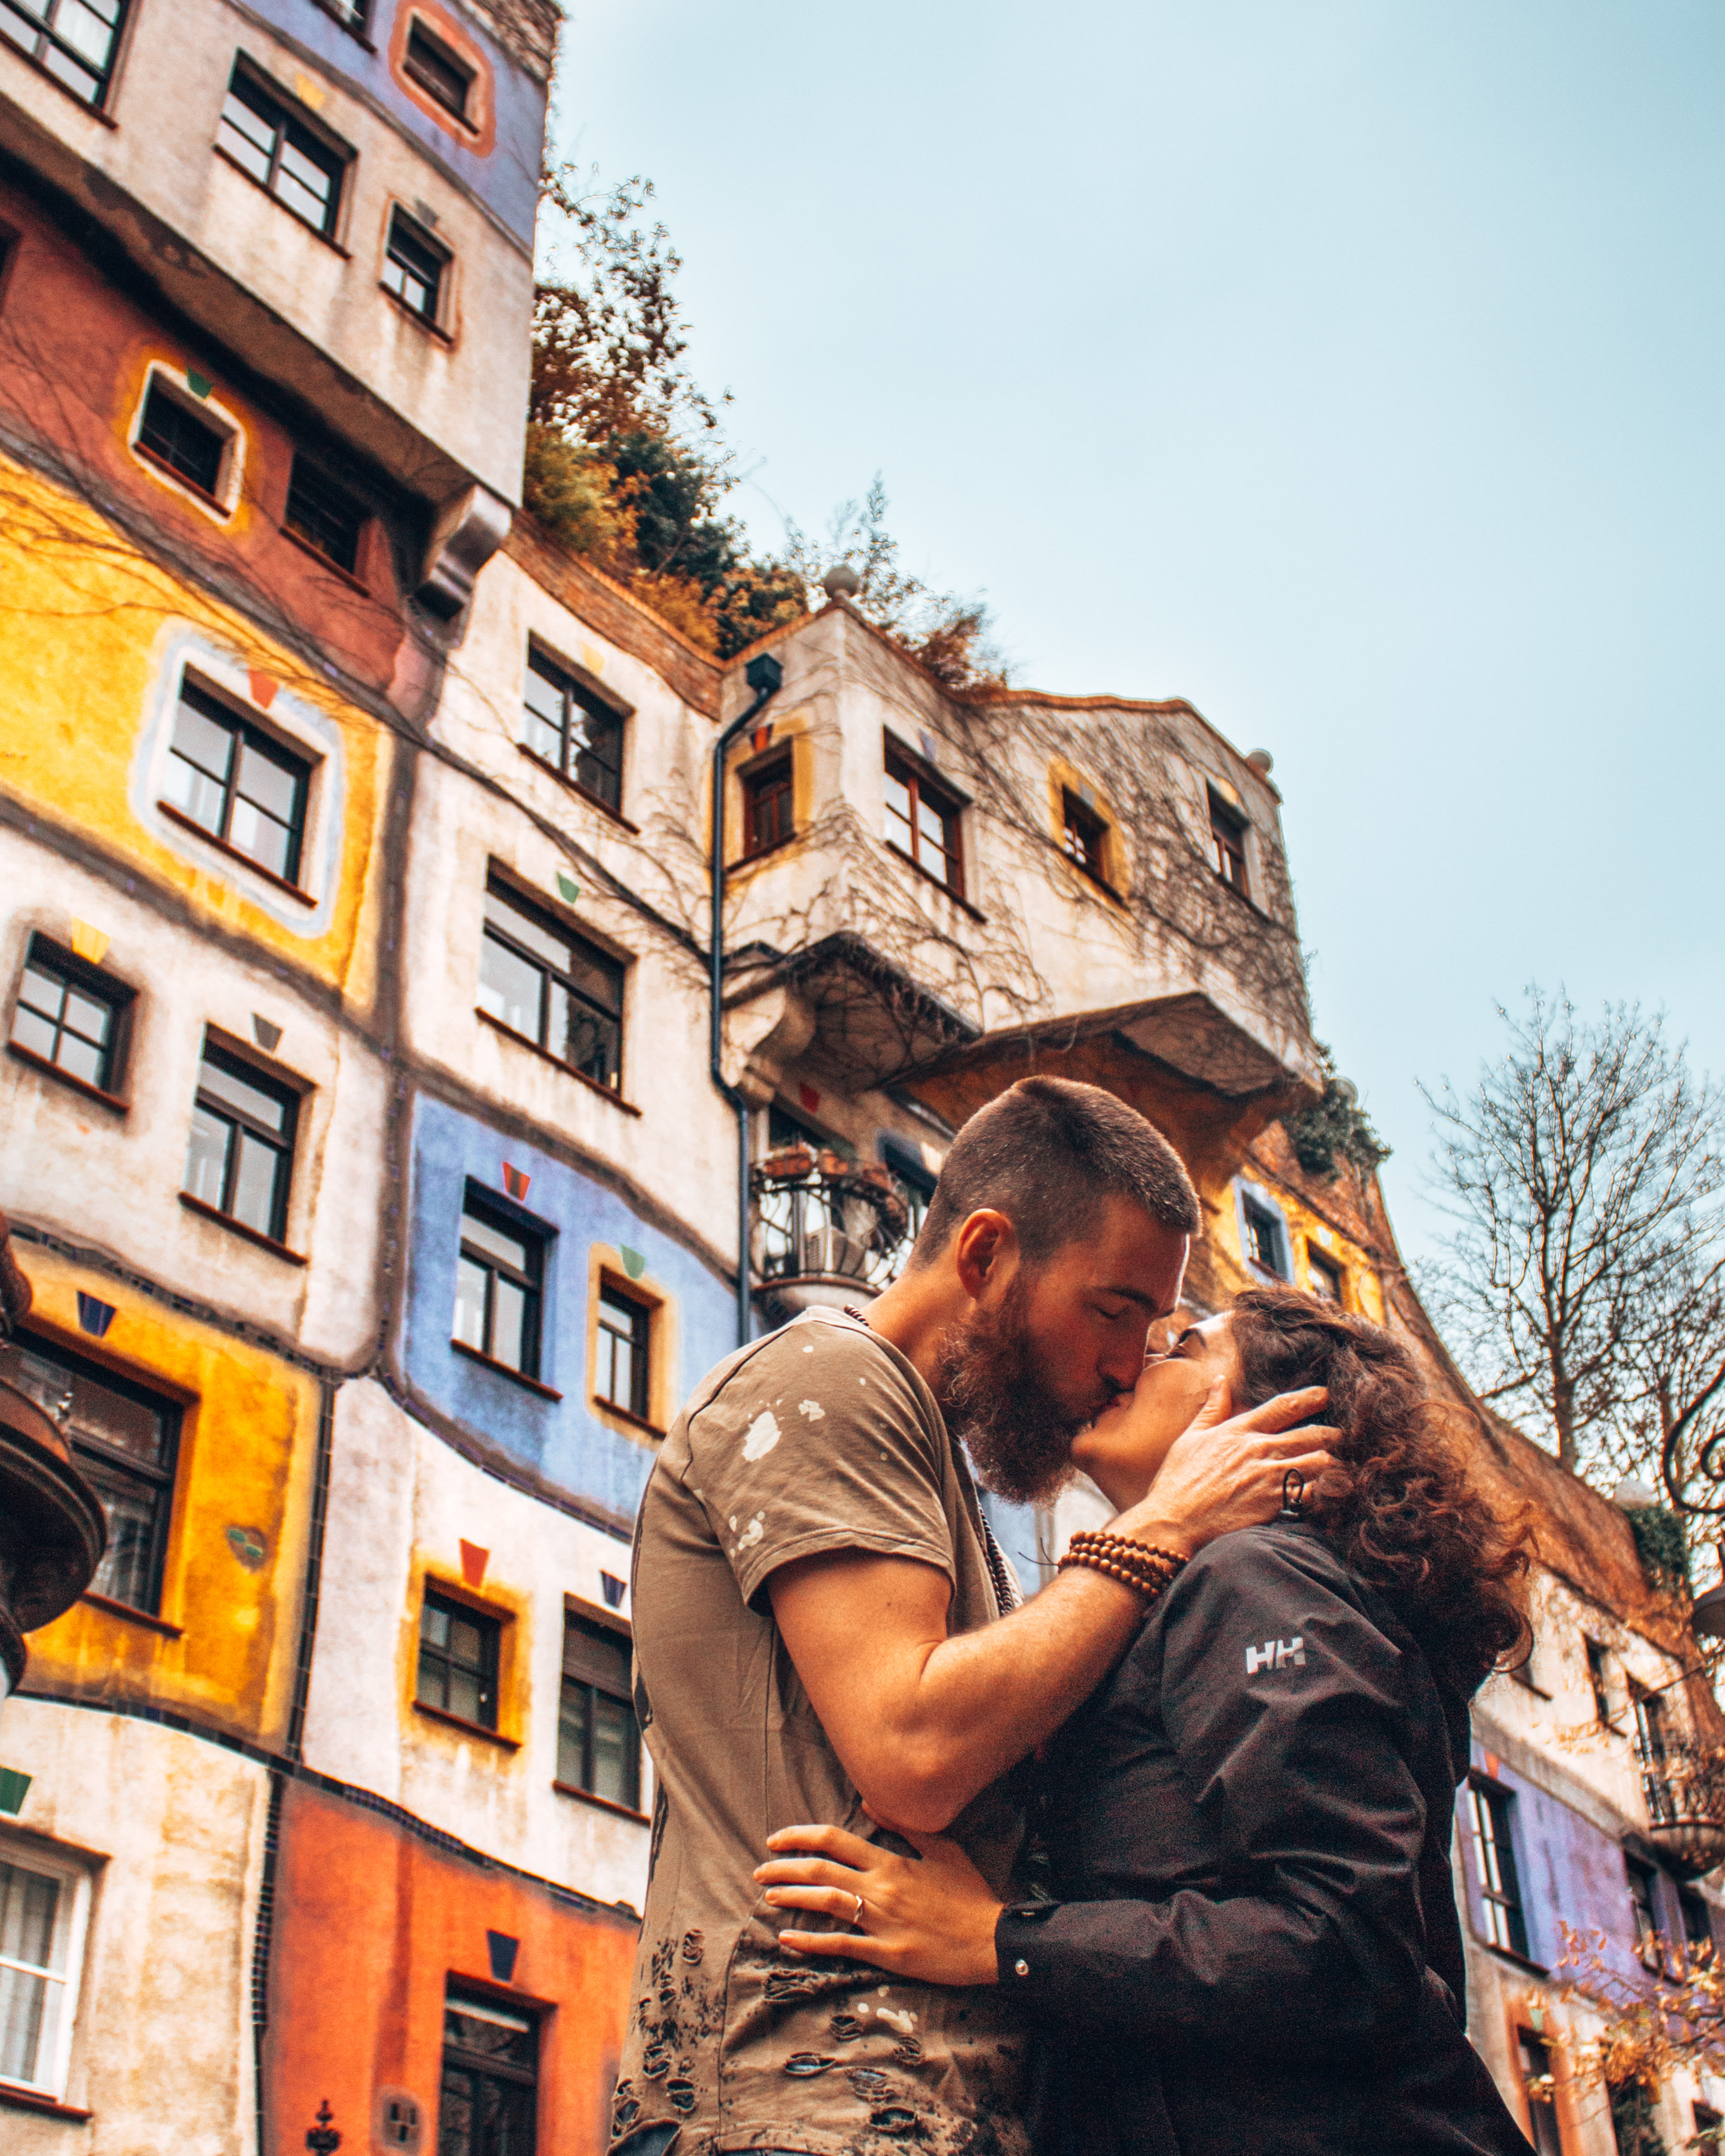 Kissing in front of the Hundertwasser house in Vienna